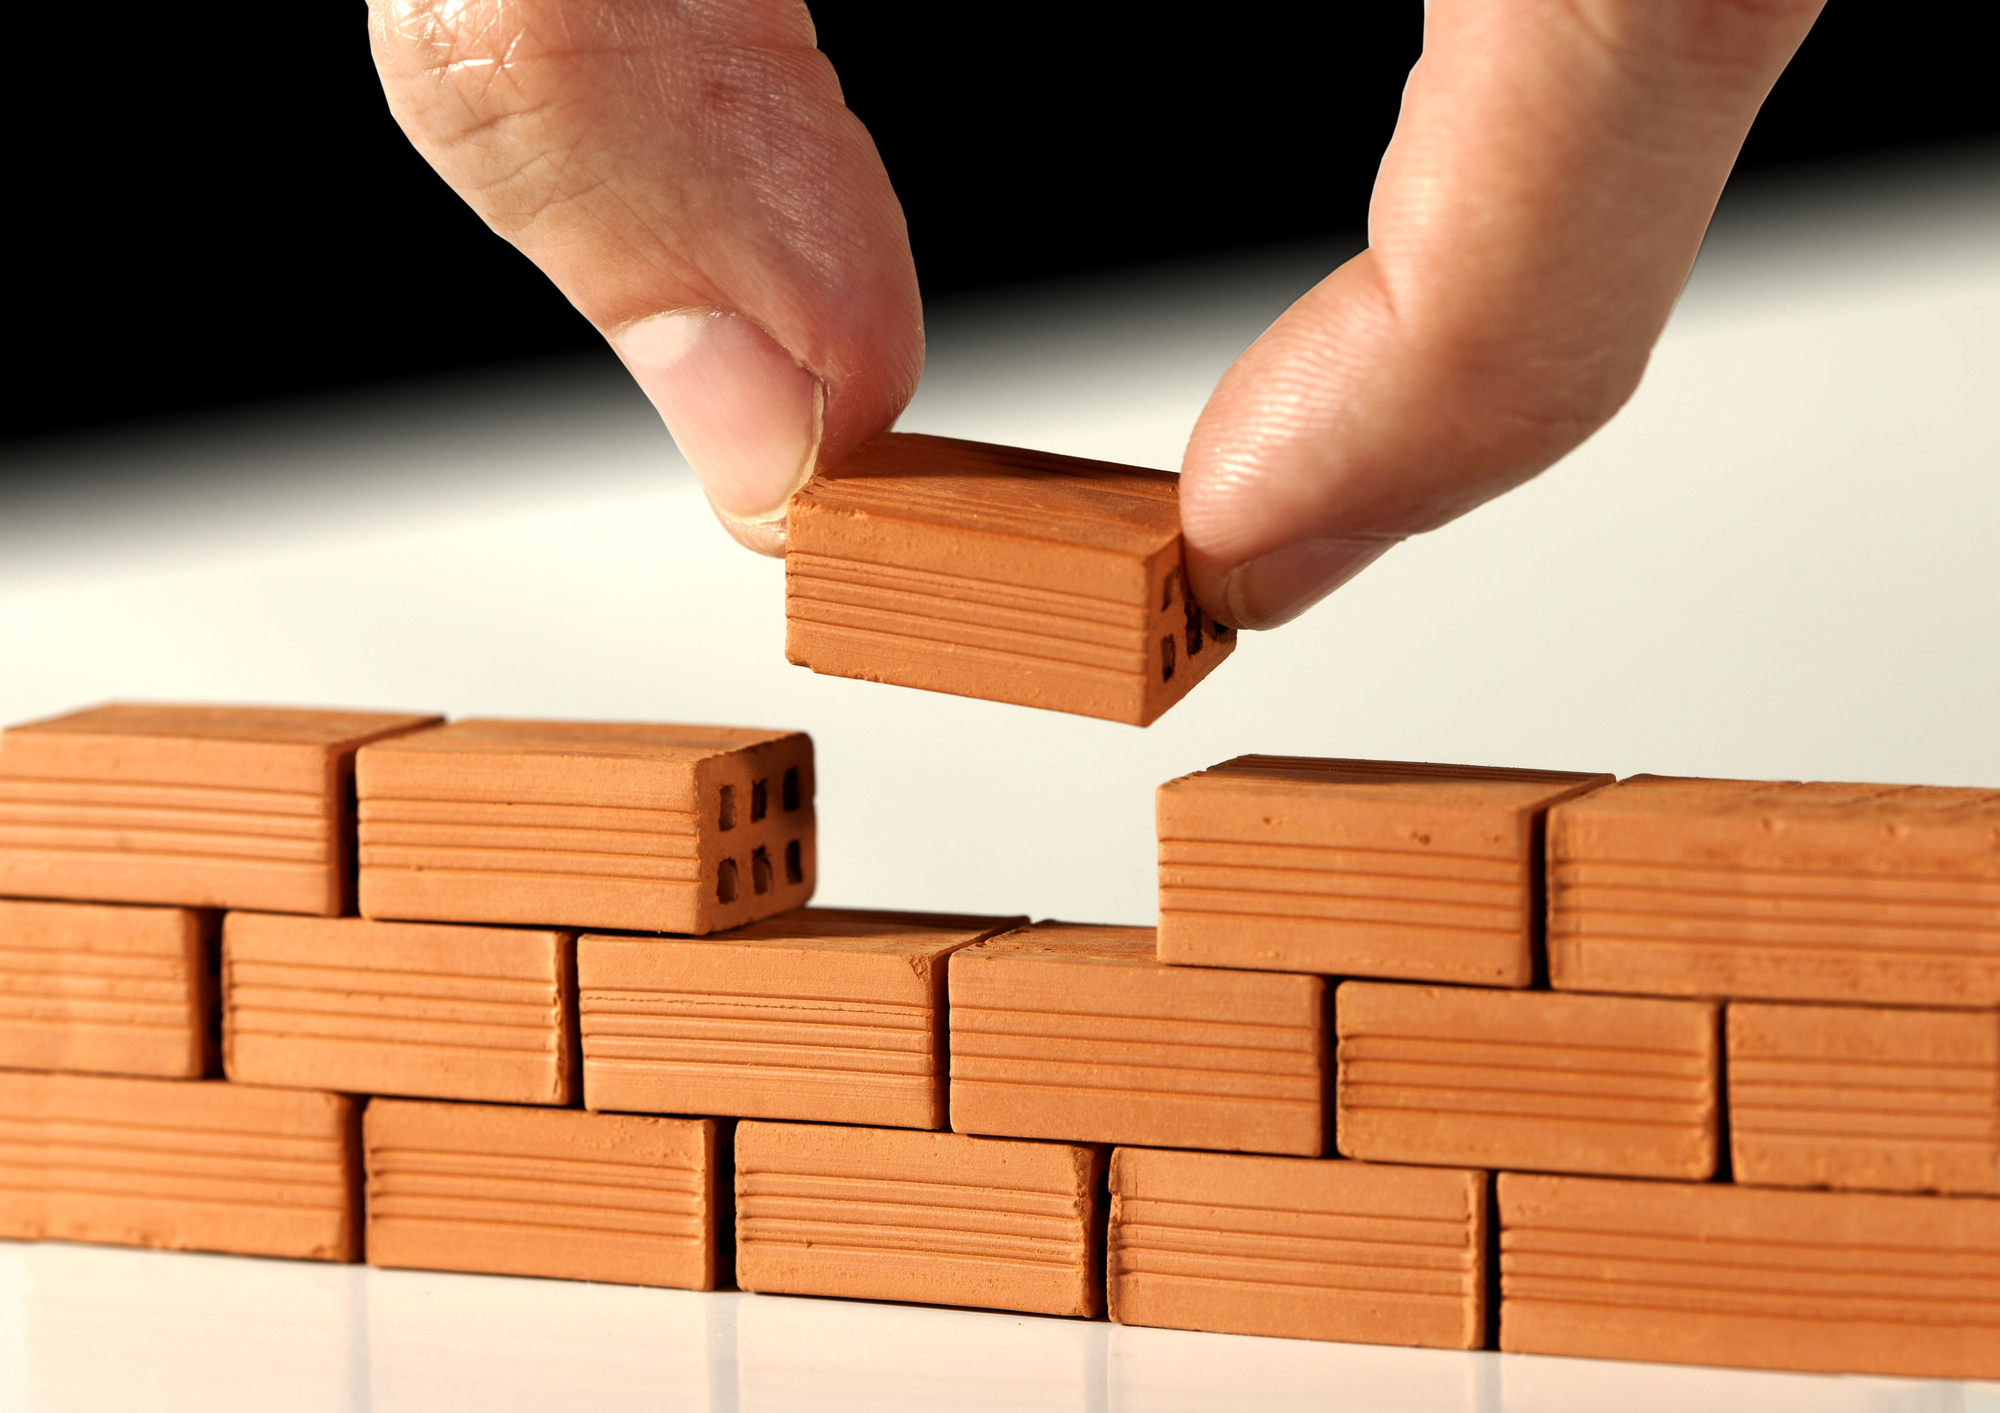 Building foundations for a sales call